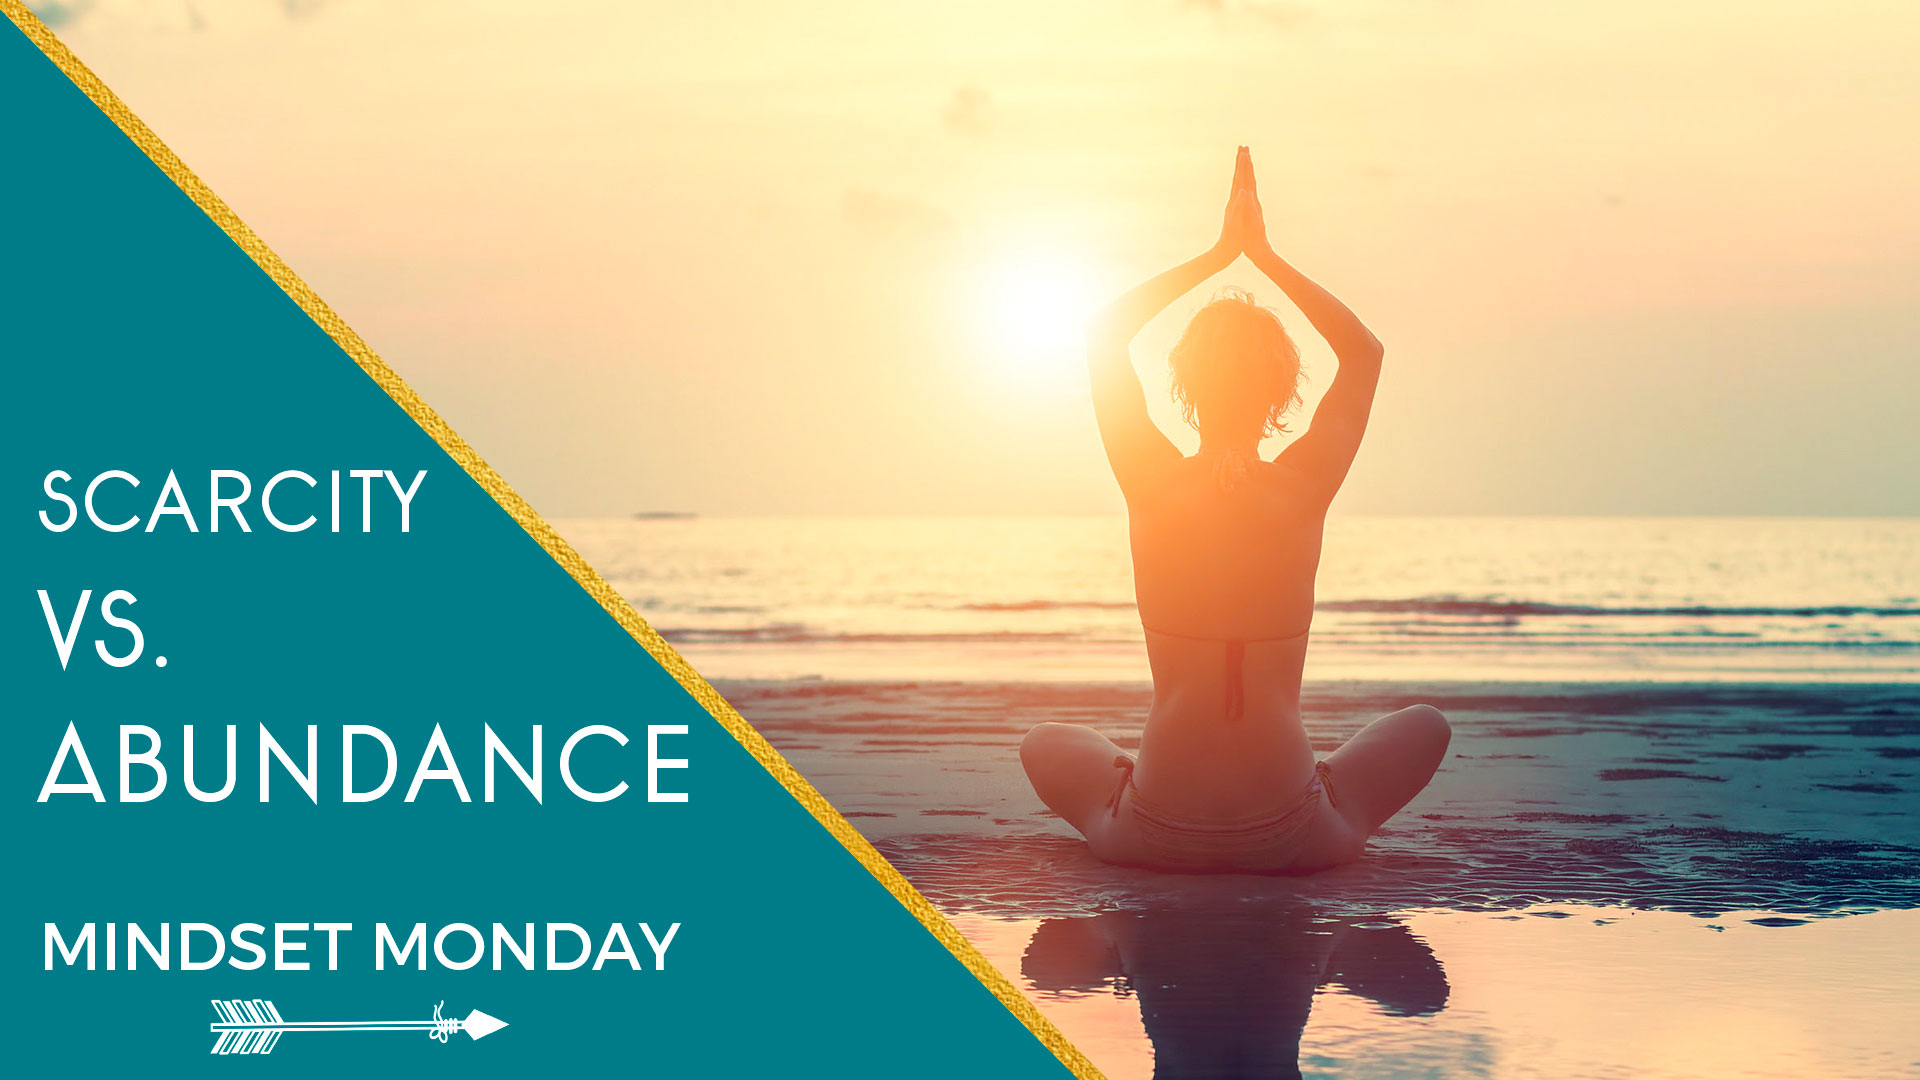 Hey Soul Tribe, today we're going to talk about one of my favorite mindset topics, The Abundance Mindset vs. The Scarcity mindset. The Question is: Are you living in a vibration of Abundance or a vibration of Scarcity? We're going into how you may be focusing more on the lack in your life without even realizing it and how we can create natural abundance easily by changing our mindset. Also I'm sharing a fun exercise to try out at the end!